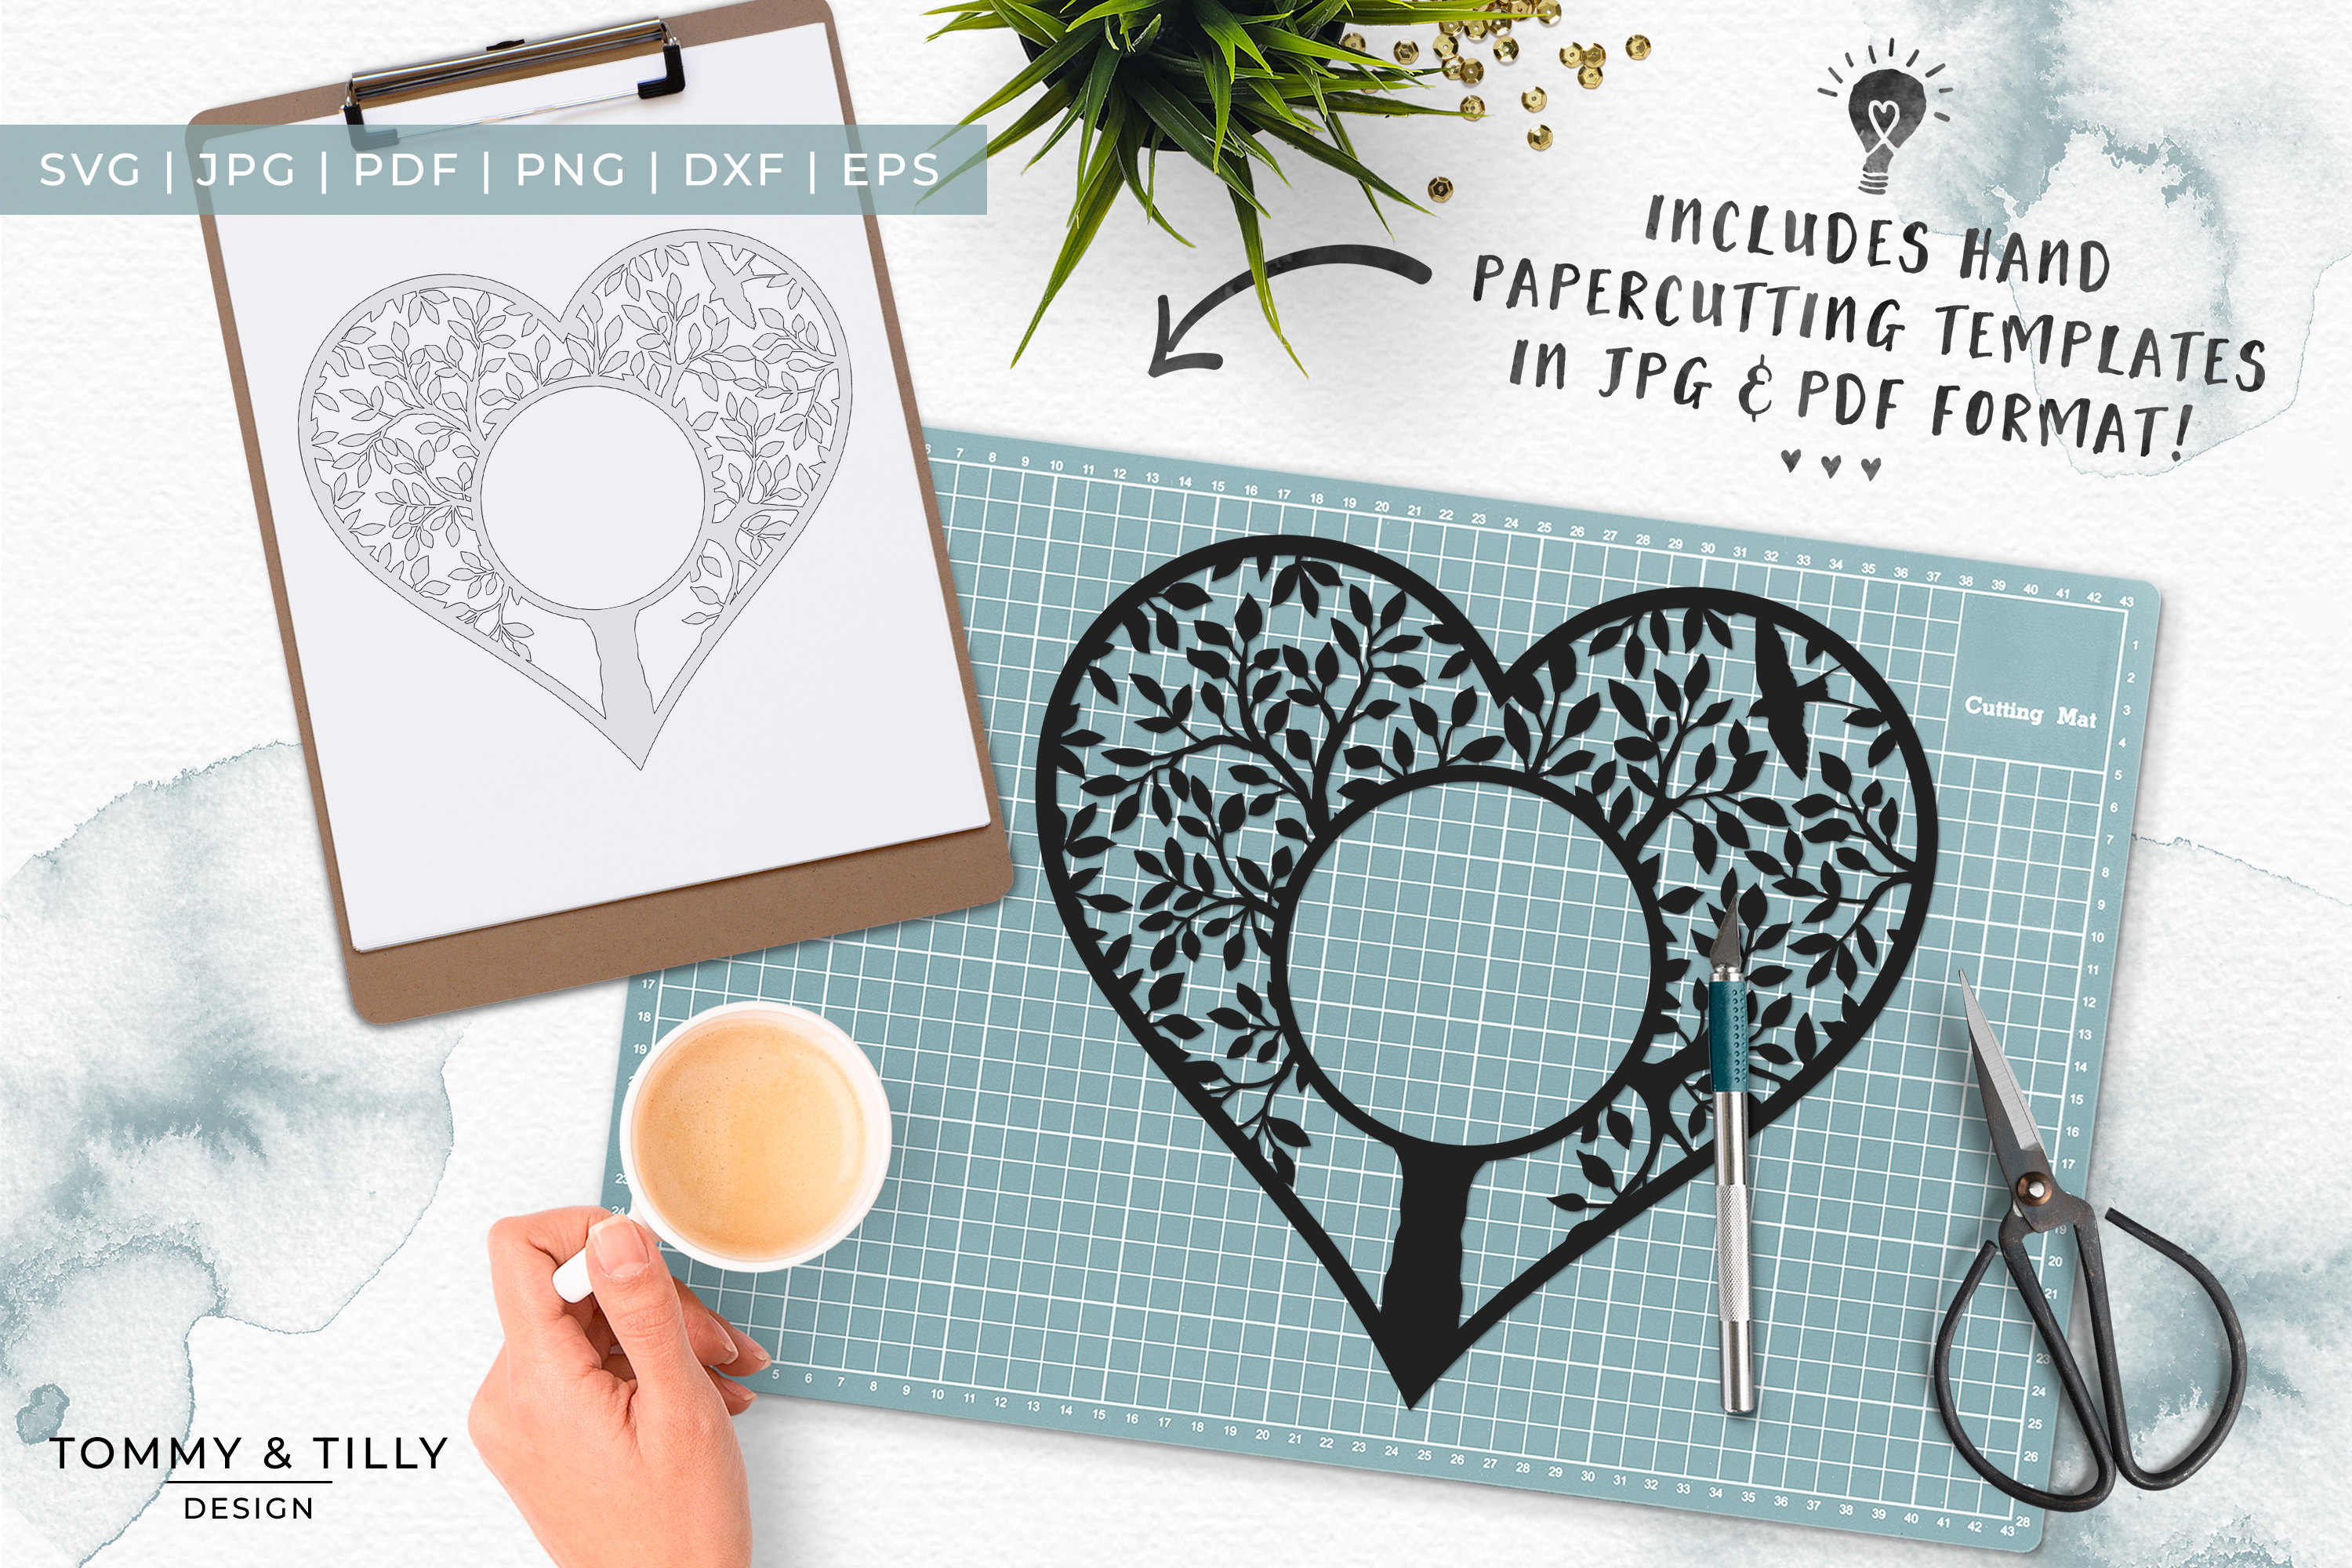 Monogram Heart Tree x 3 - Papercut Template SVG EPS DXF PNG example image 4